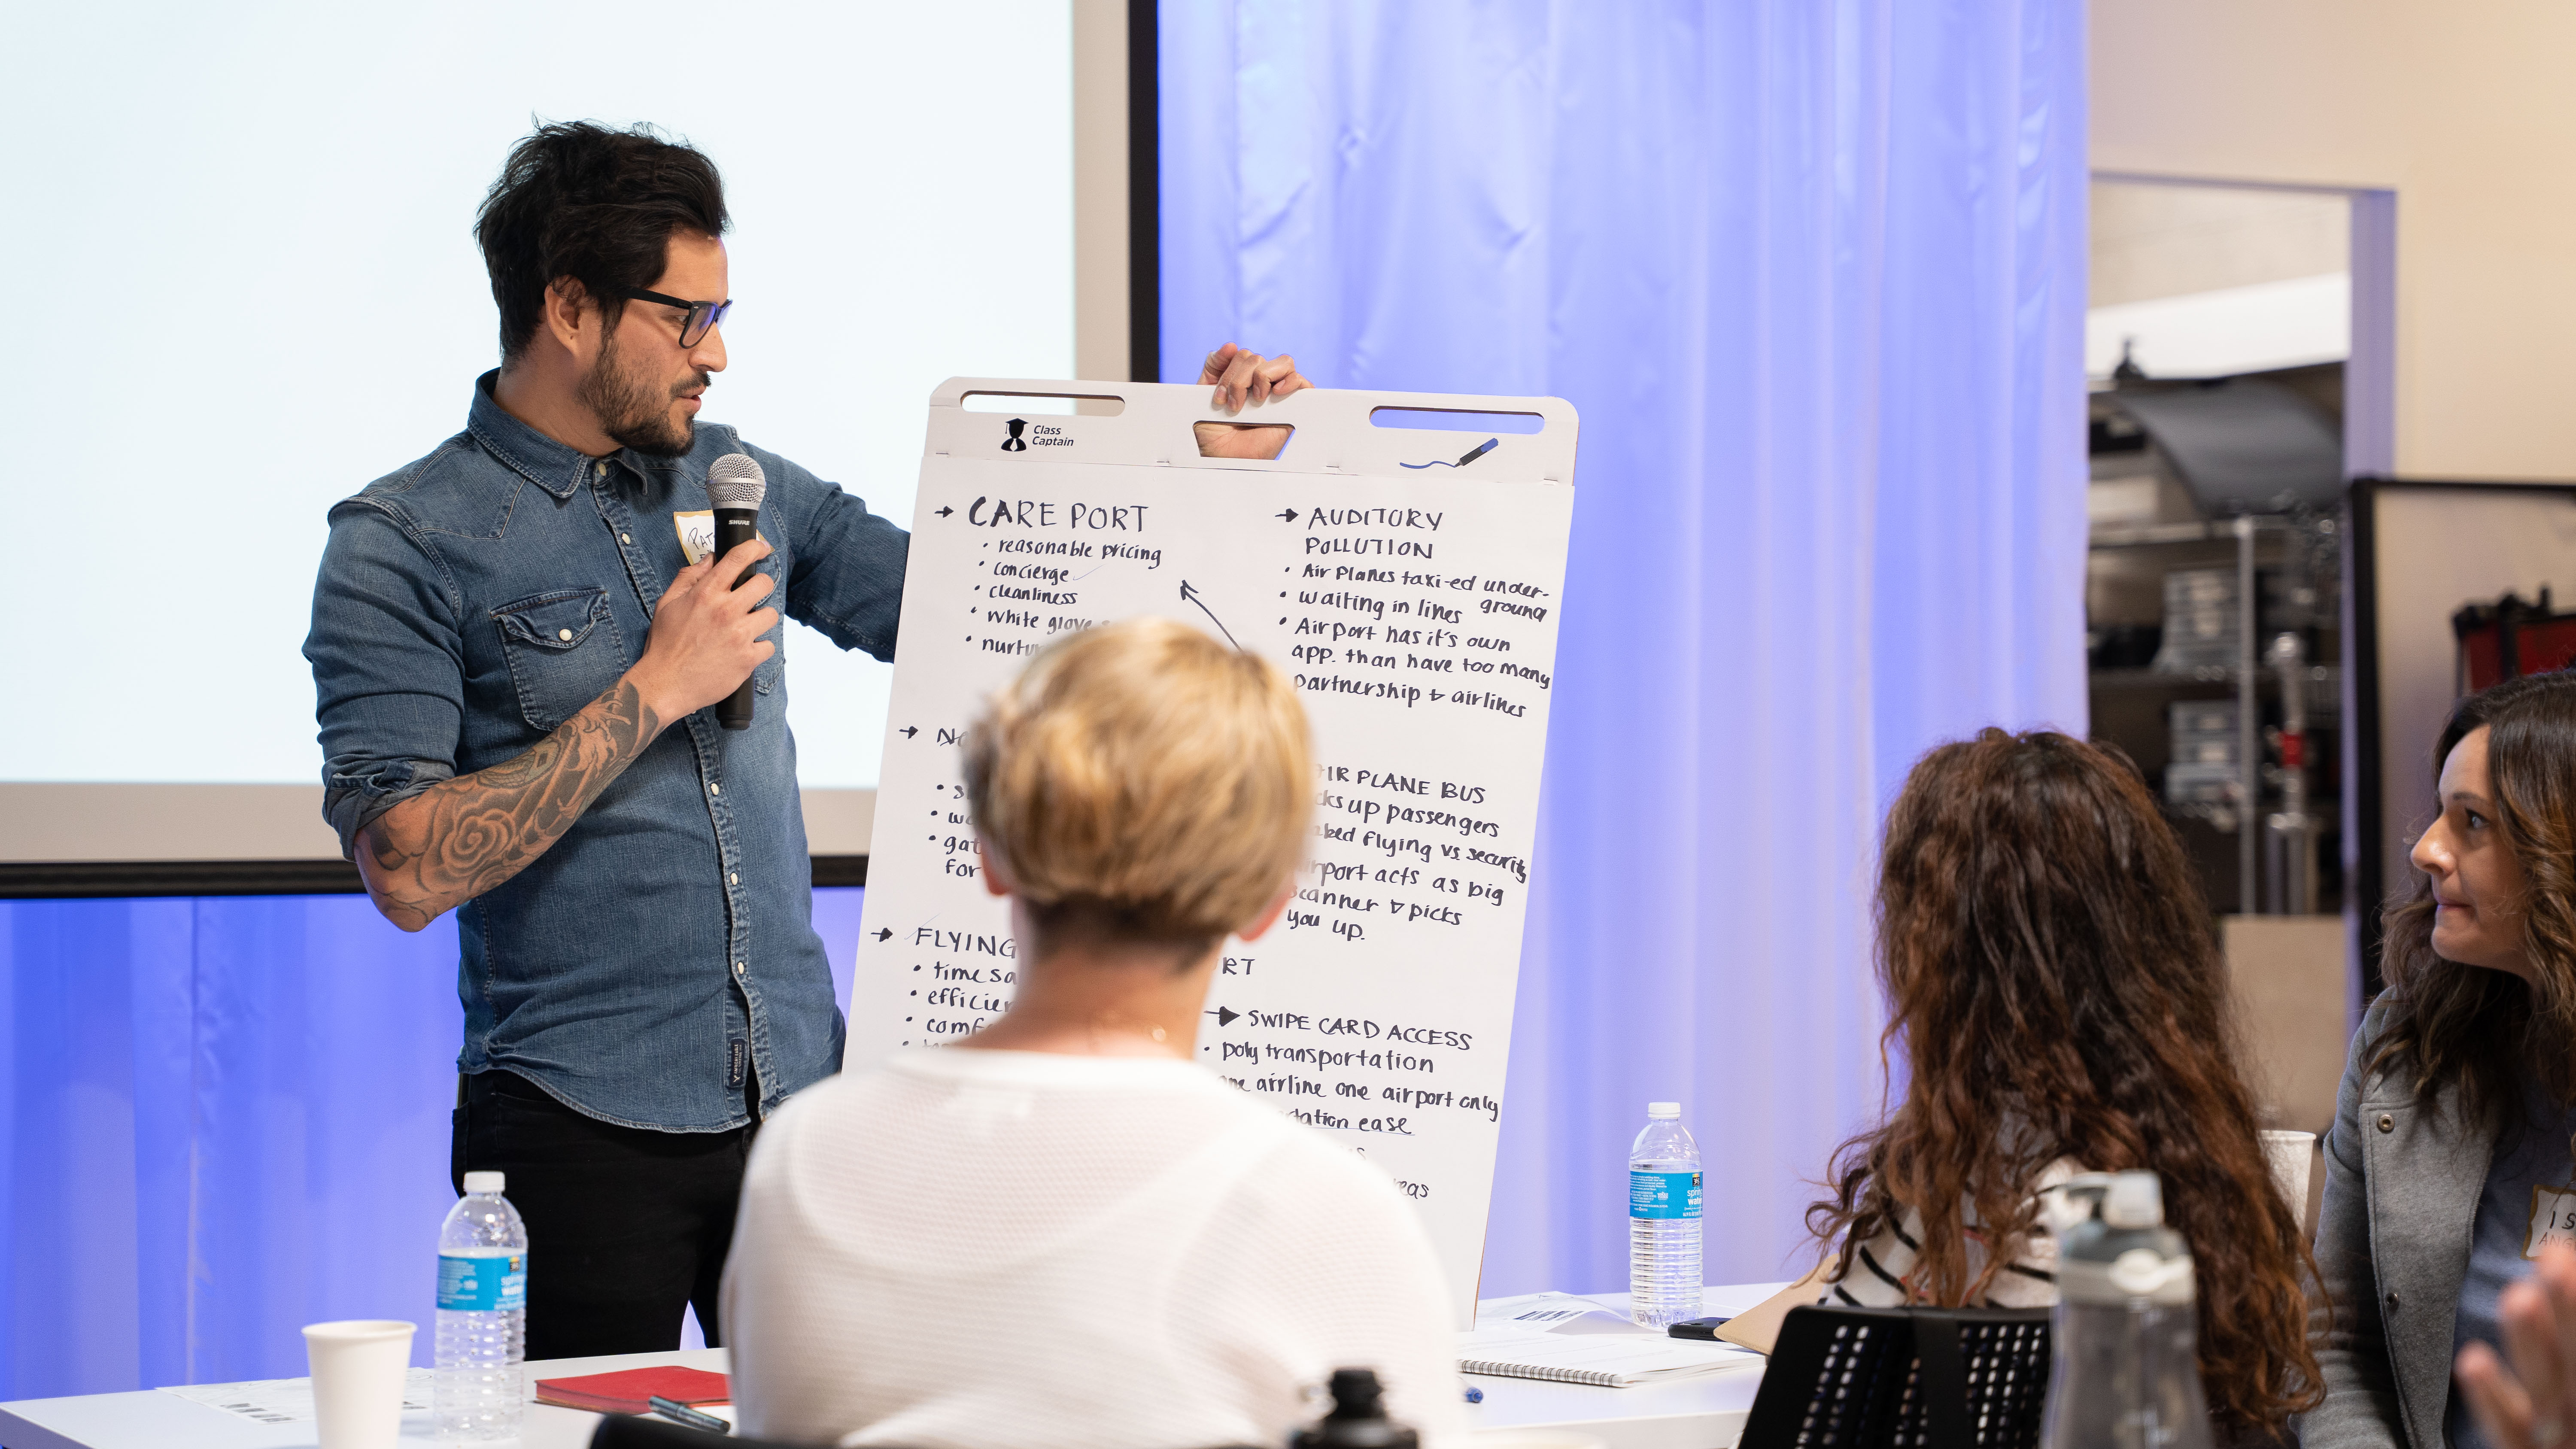 A participant shares his concept with the group.